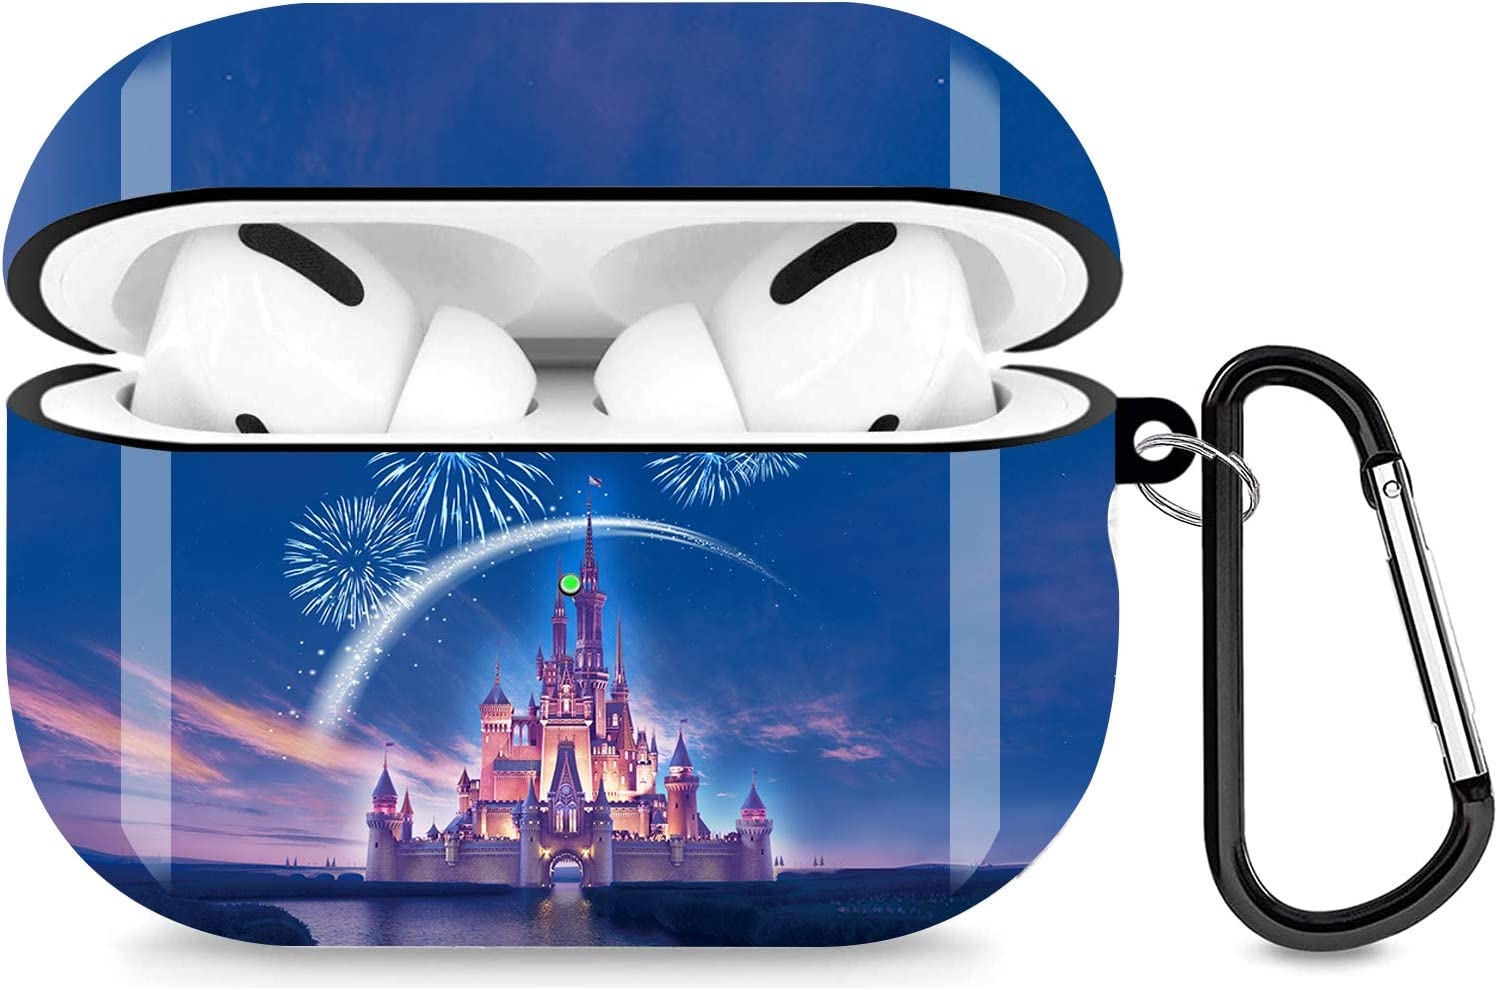 Disney Castle Airpods Pro Case Personalise Custom, Airpods Pro Case Cover Compatiable with Apple Airpods Pro Case (2019),Full Protective Durable Shockproof Drop Proof with Keychain Compatible